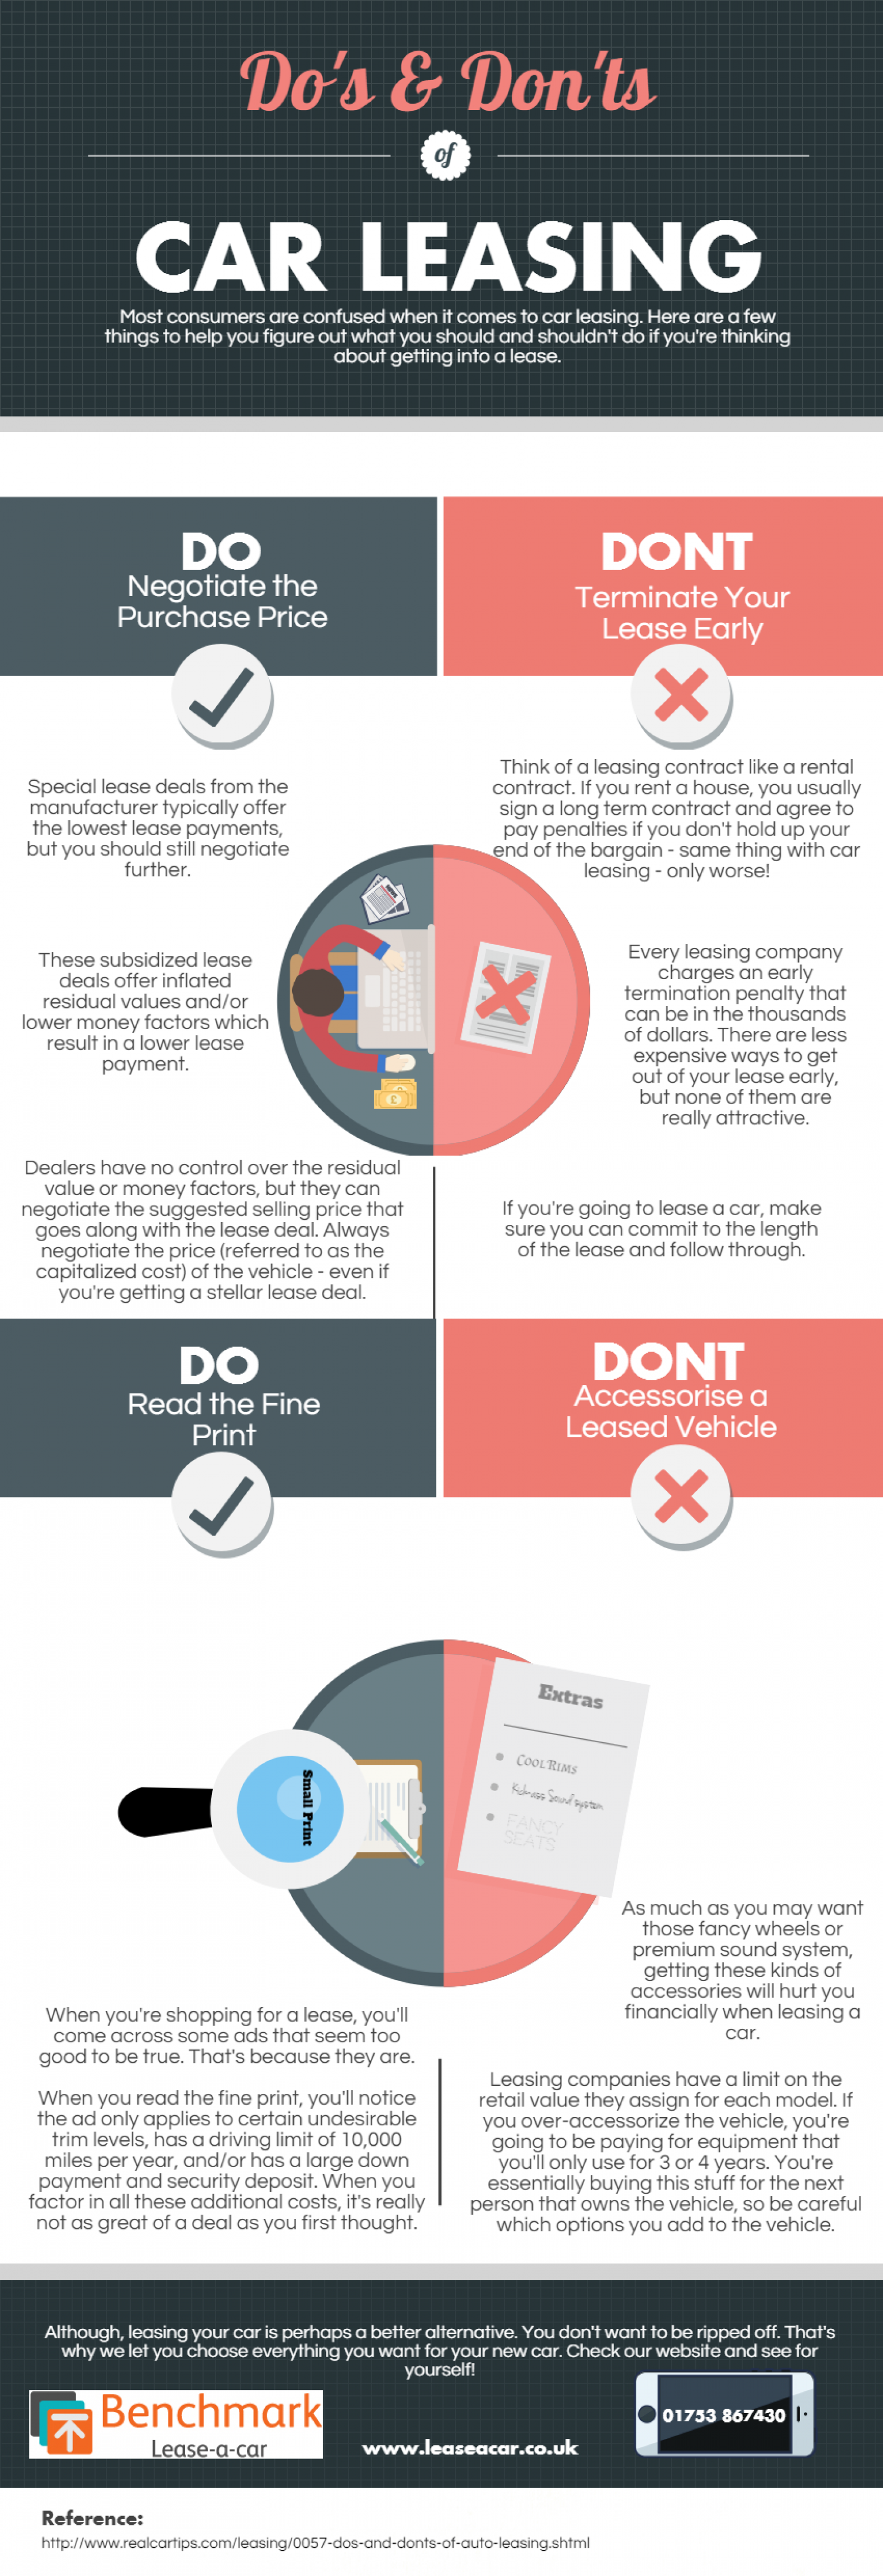 Do's & Dont's of Car Leasing Infographic